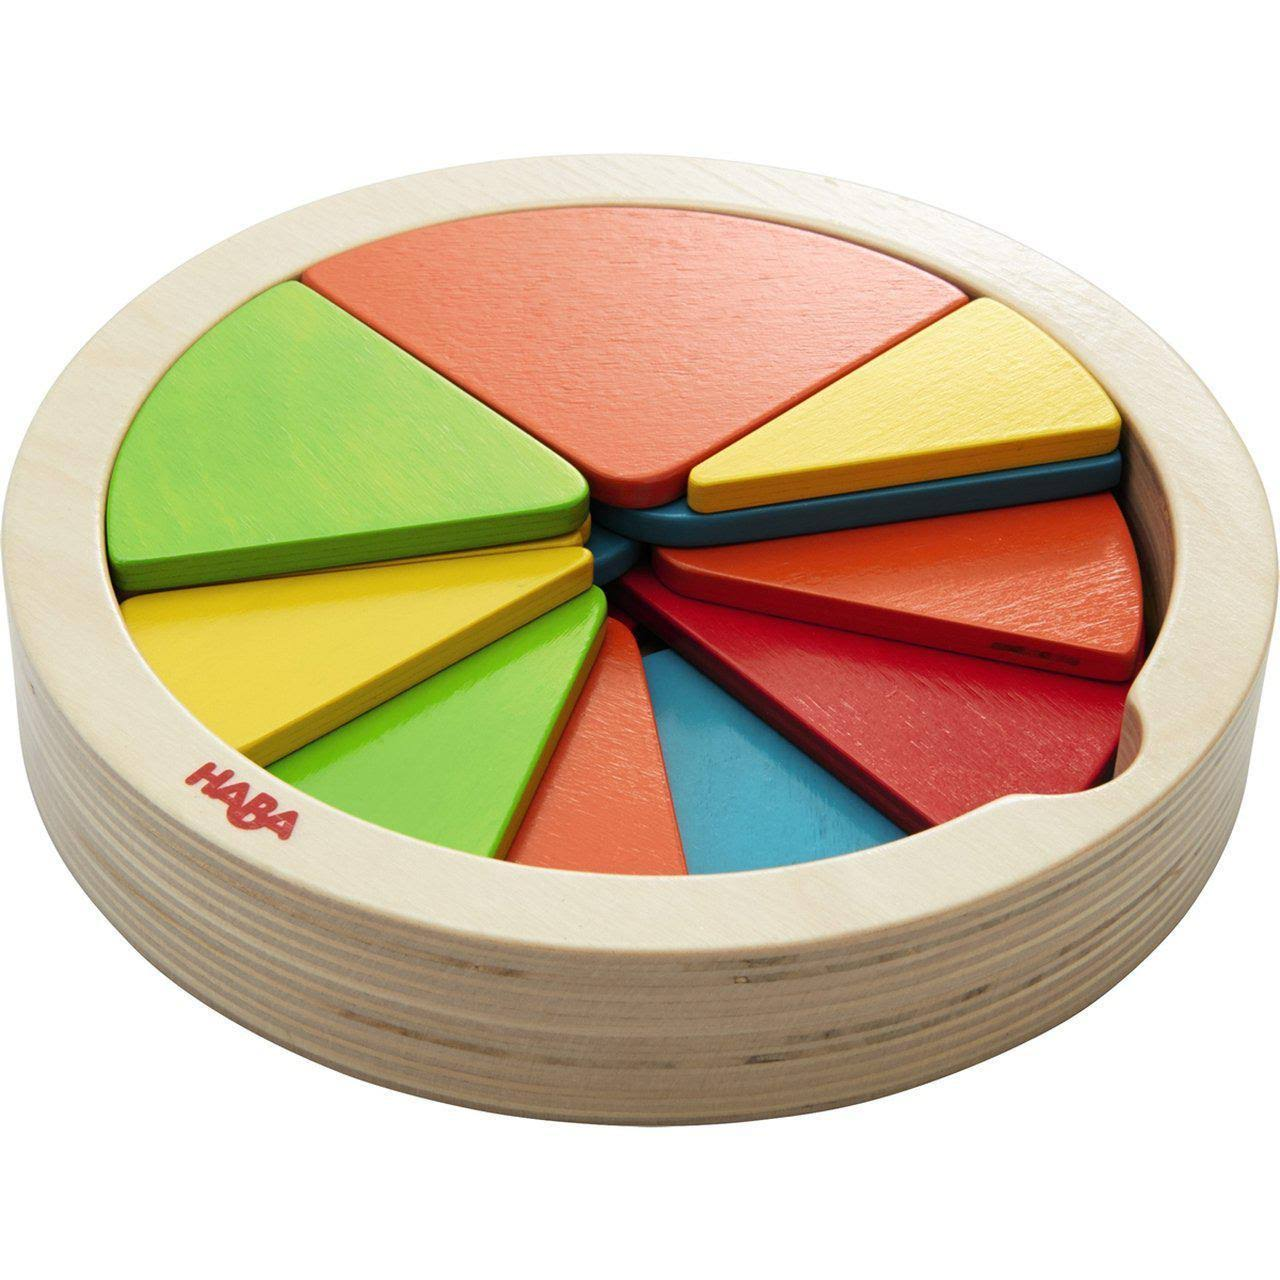 Haba Color Pie Wooden Arranging Game - for Ages 2